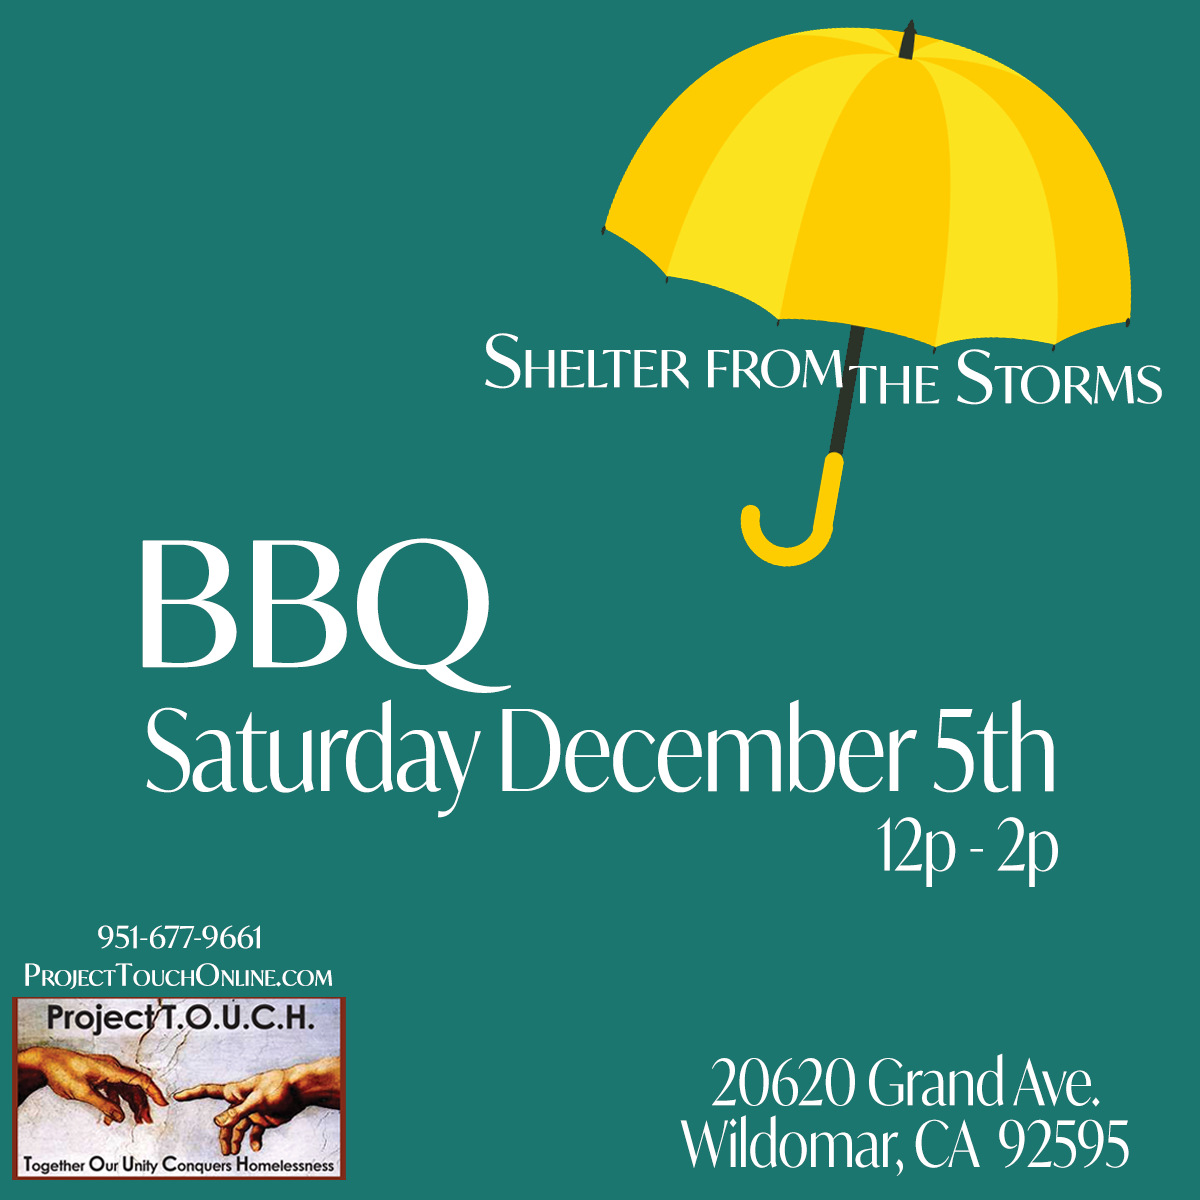 Shelter from the Storms - BBQ image